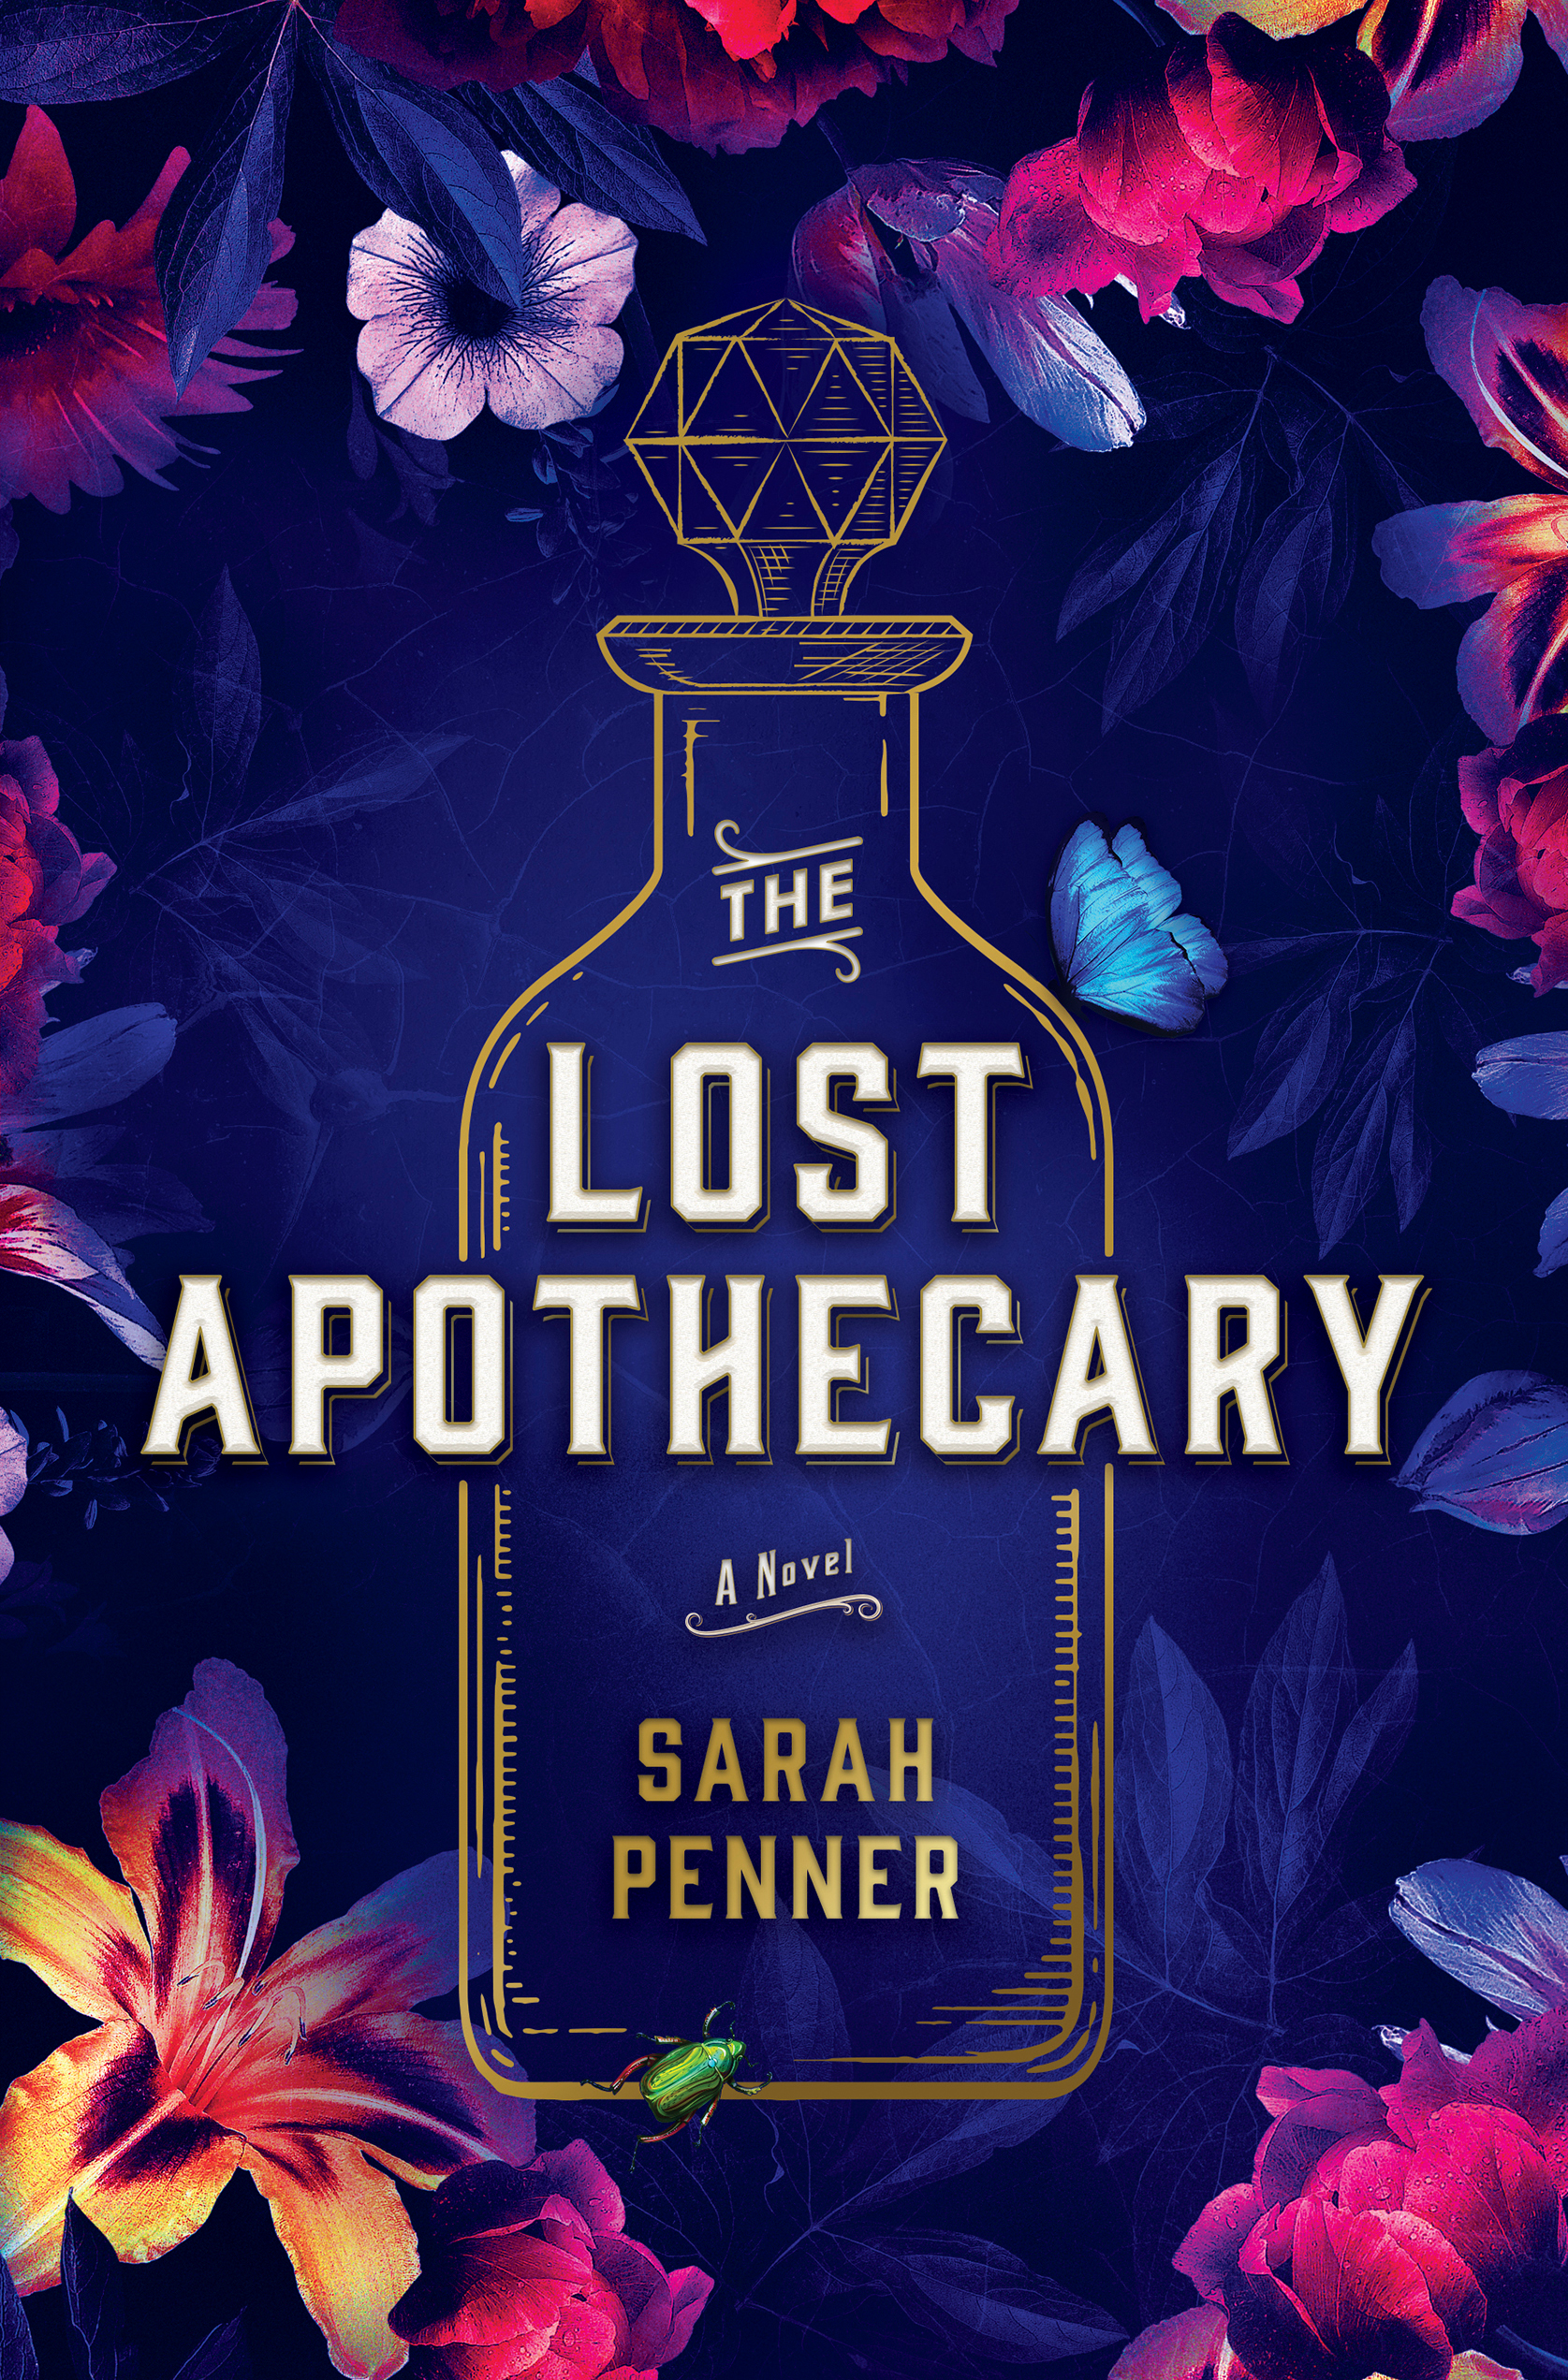 The Lost Apothecary by Sarah Penner Book Cover